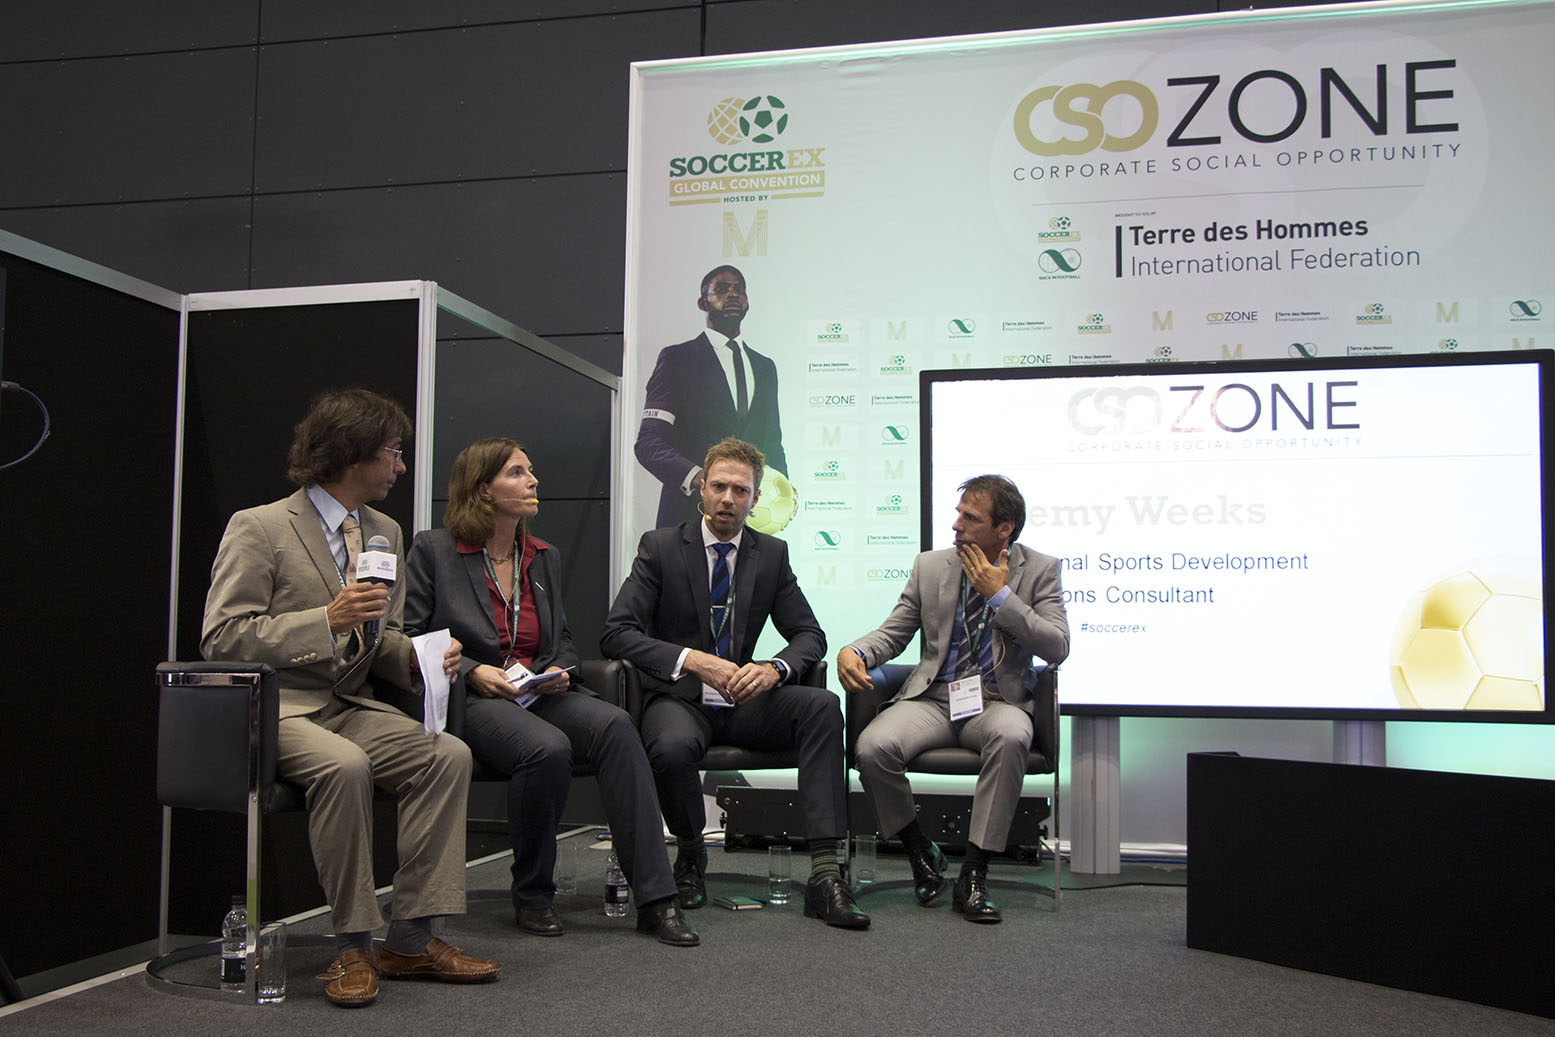 Our participation at Soccerex 2014 Global Convention